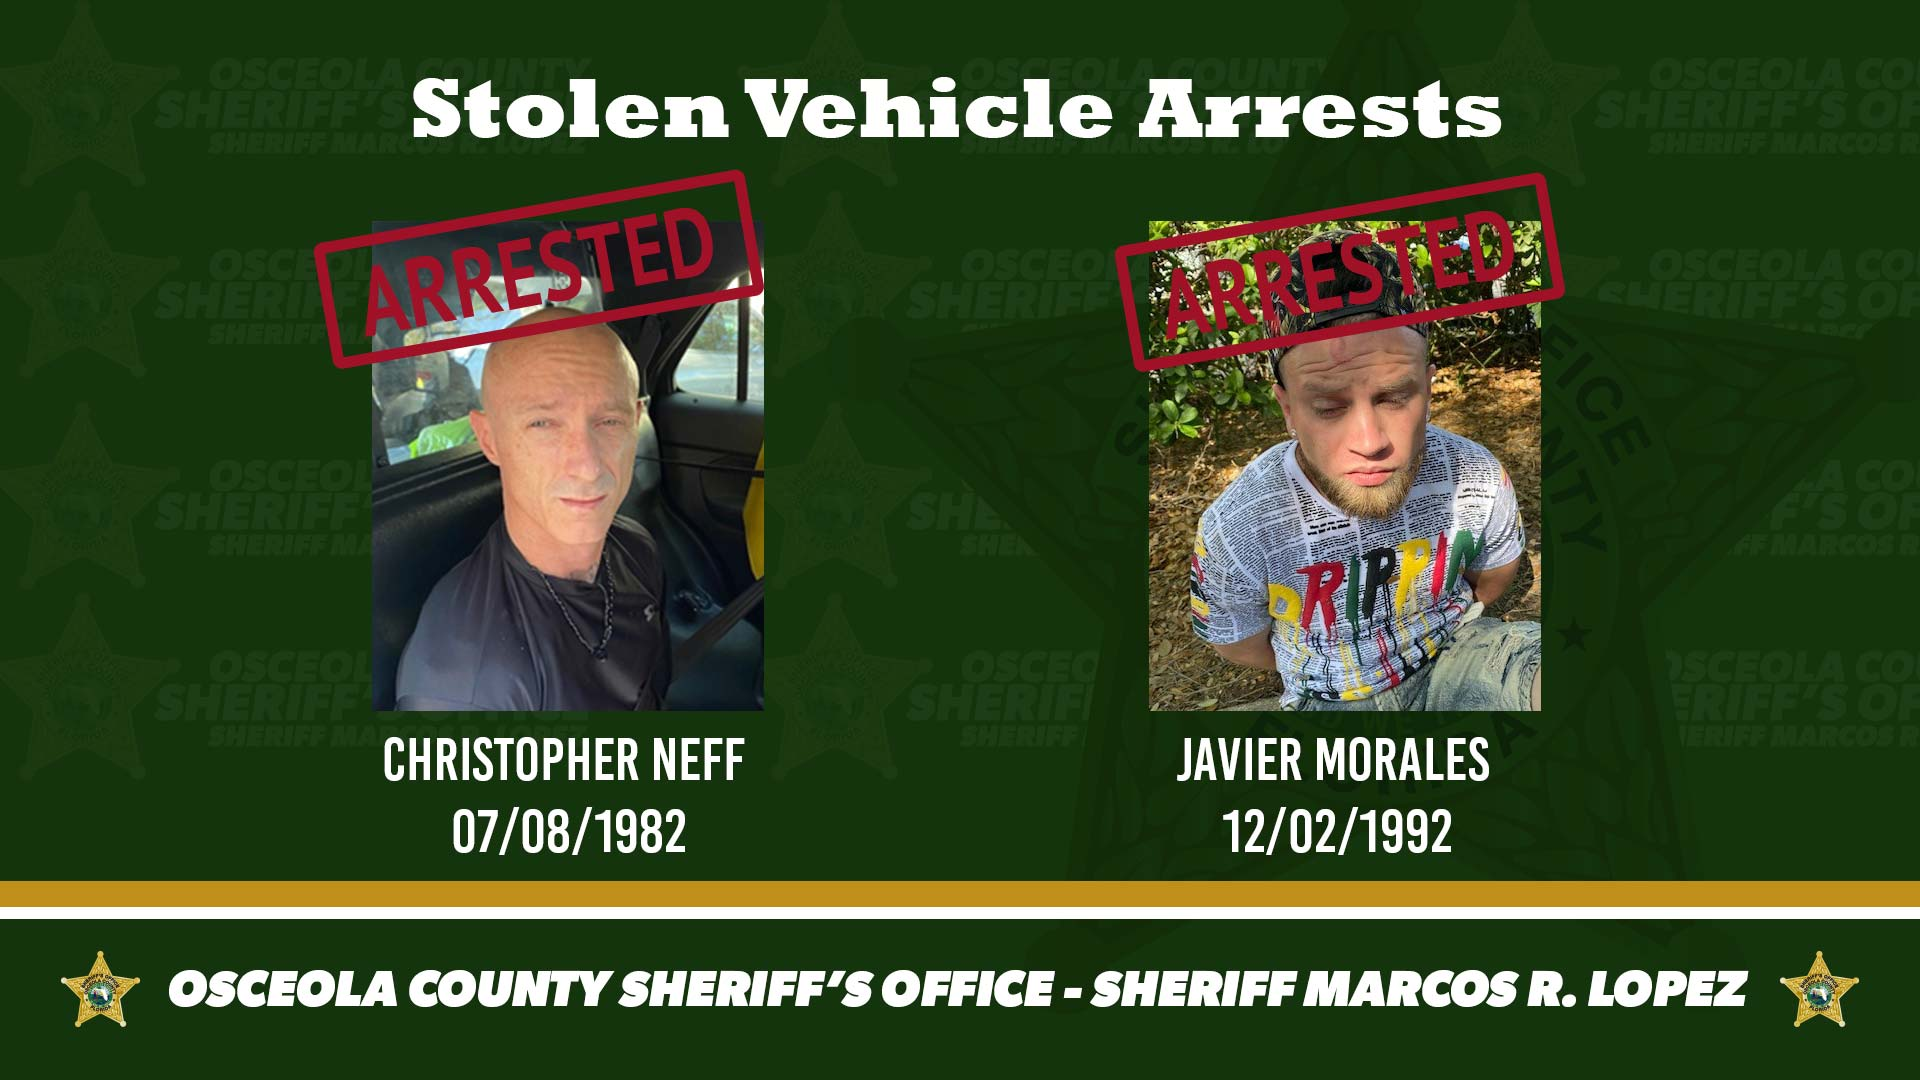 Stolen Vehicle arrests